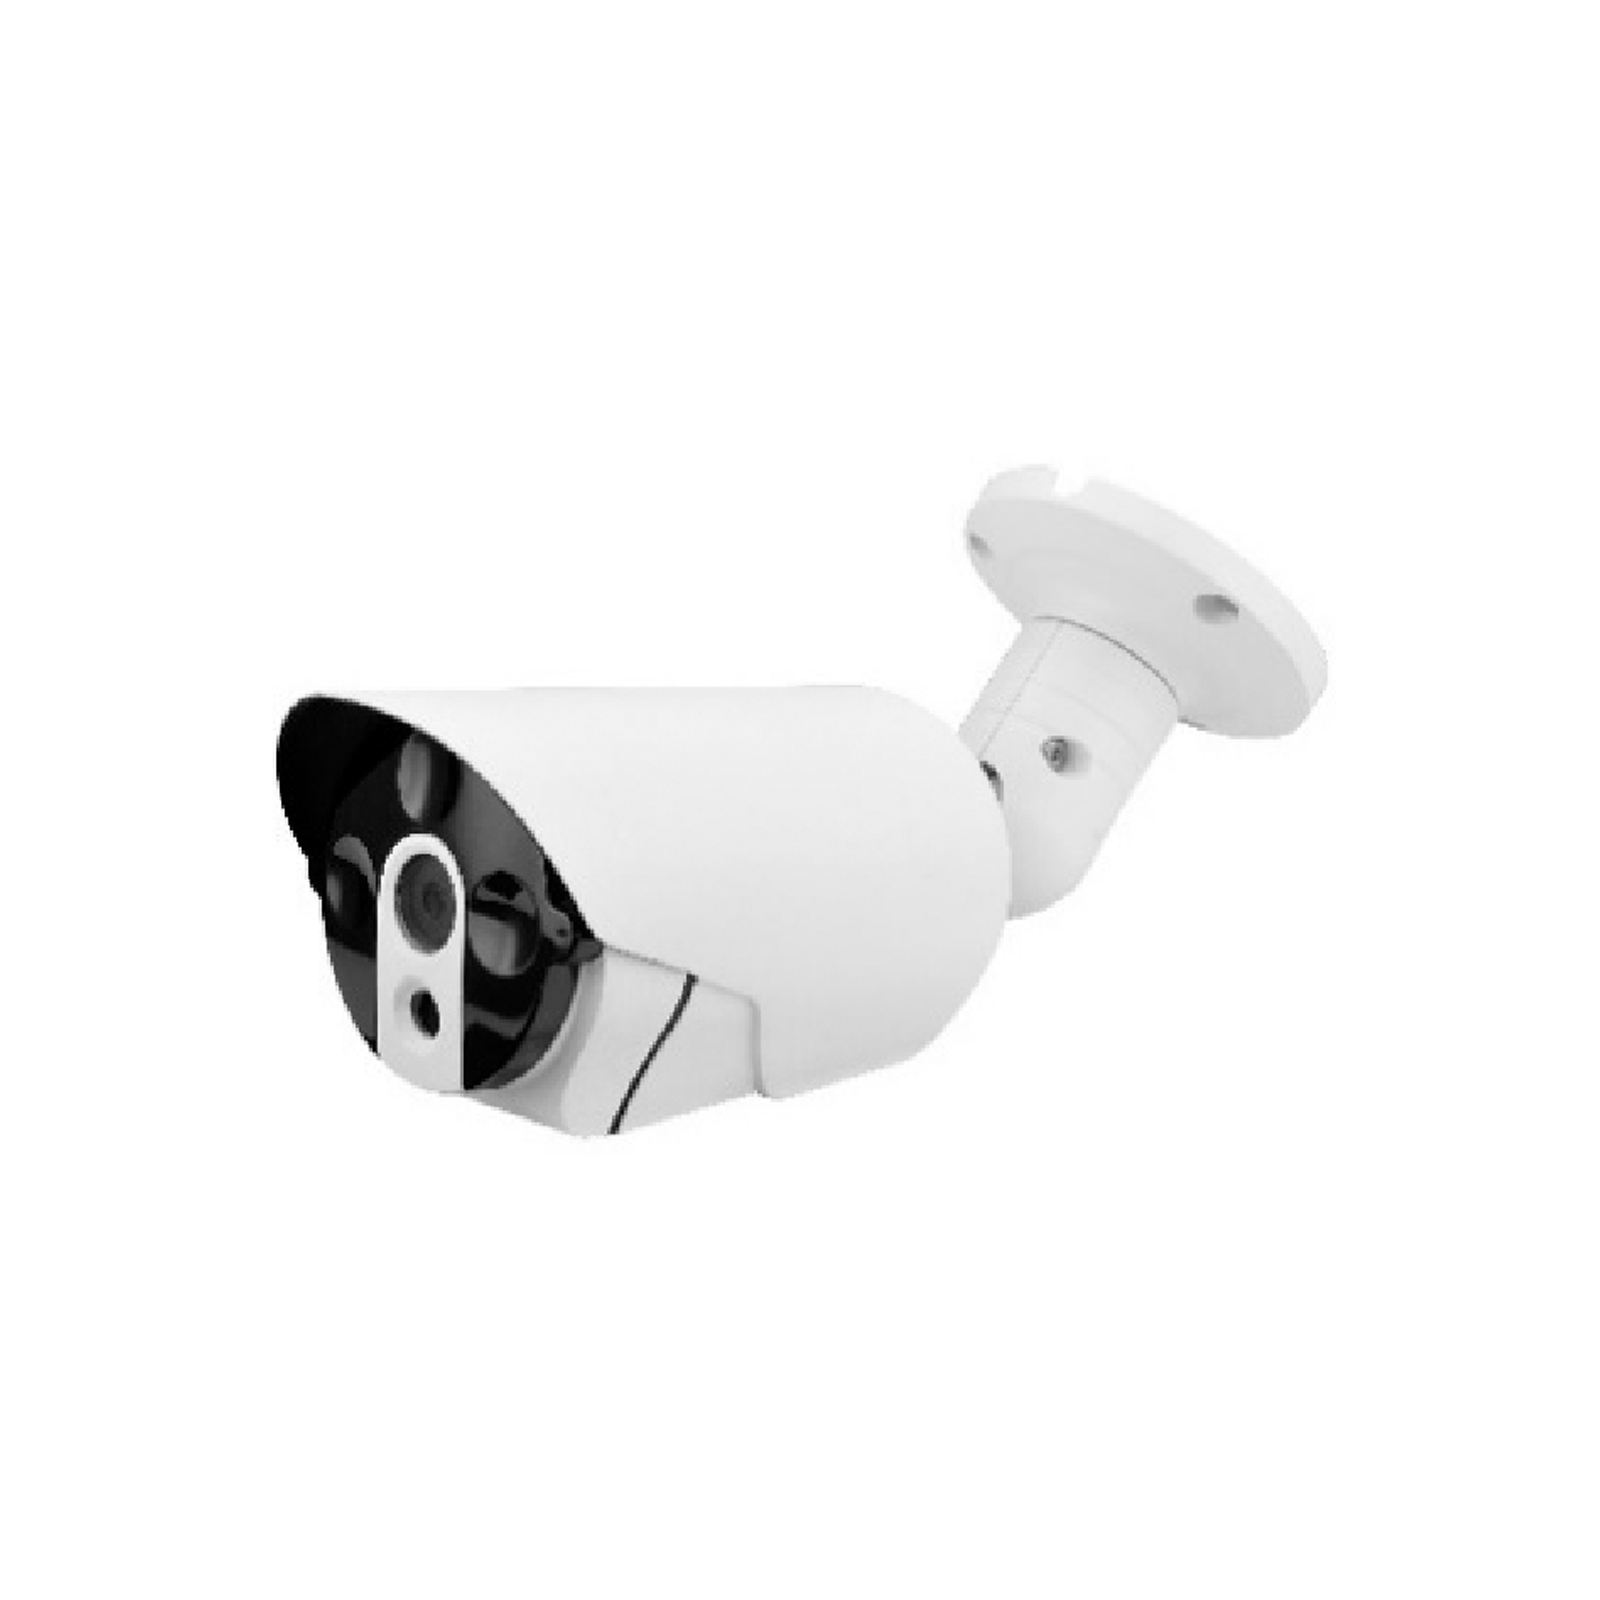 3.6 mm and optional 2.8/6 mm lenses are optimized for viewing angles that fit any situation/POE IP AI Basic Bullet Camera